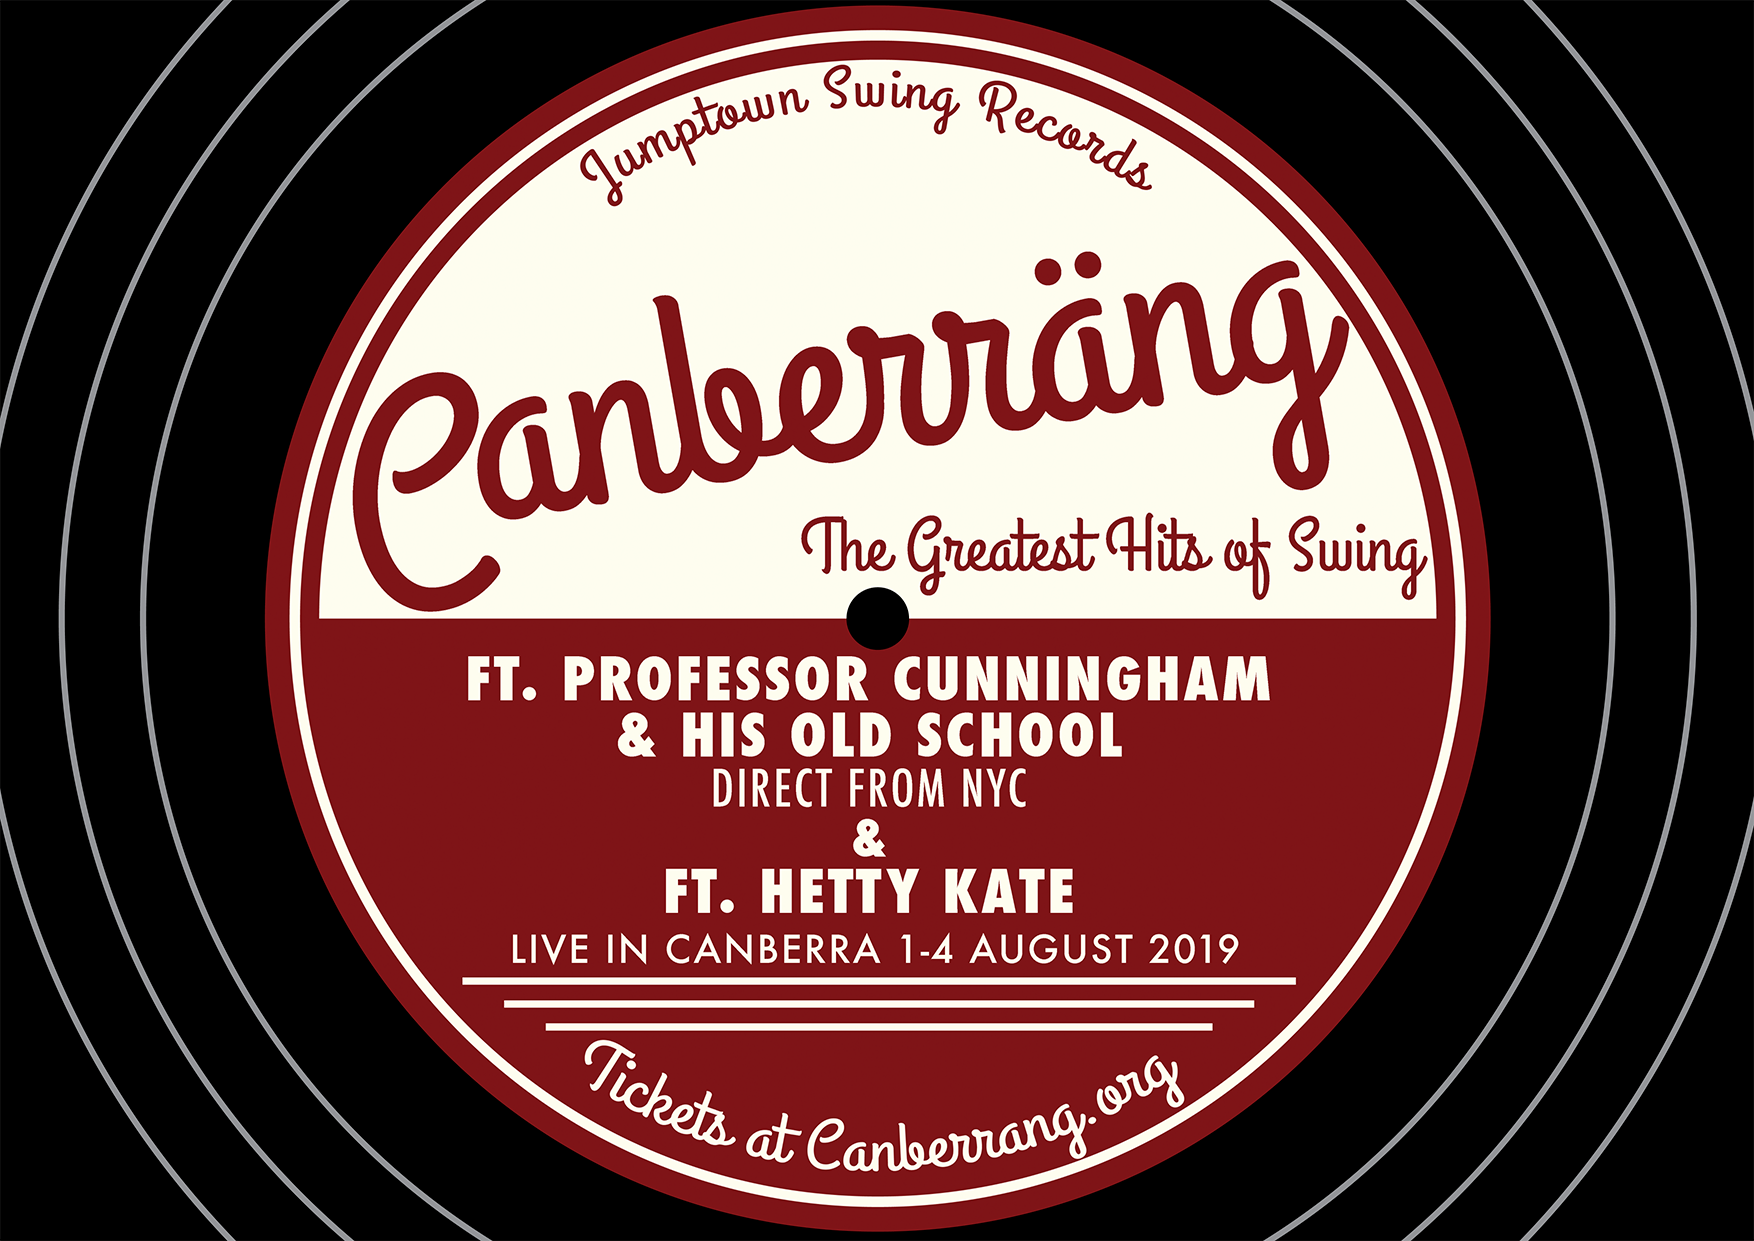 Canberrang Record-Hetty-Postcard-001